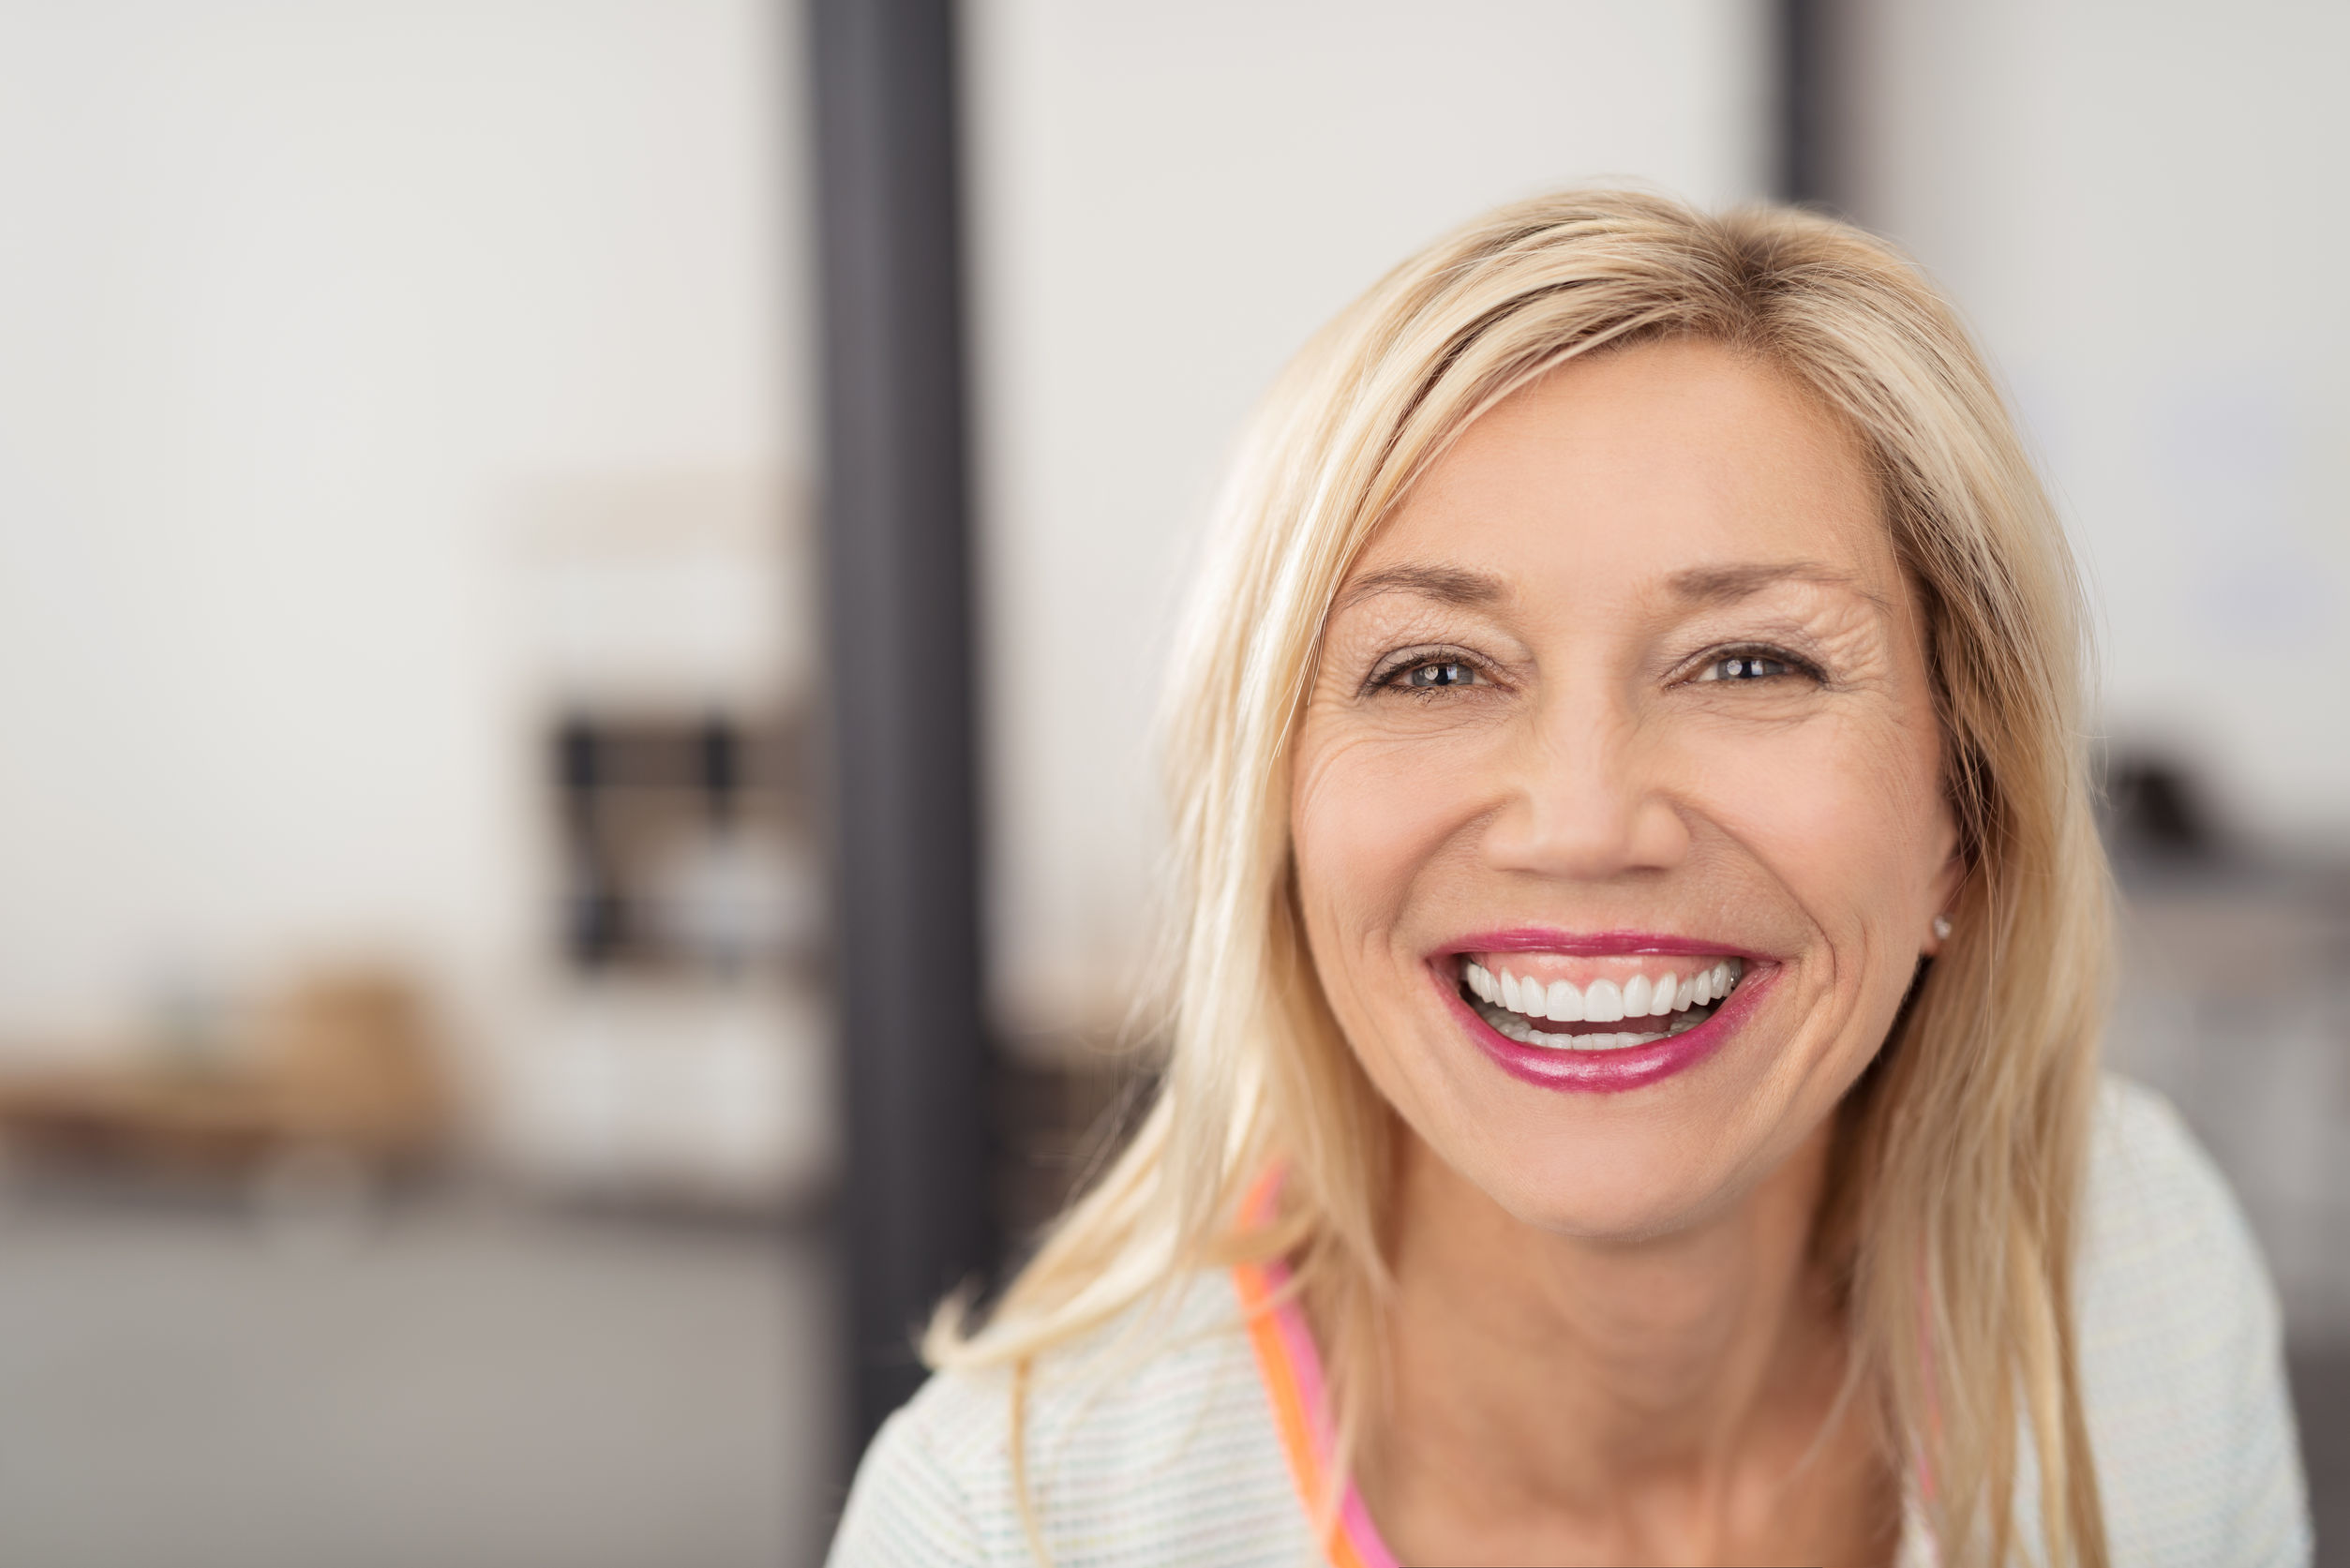 laughing middle-aged blond woman with beaming smile looking directly into the camera